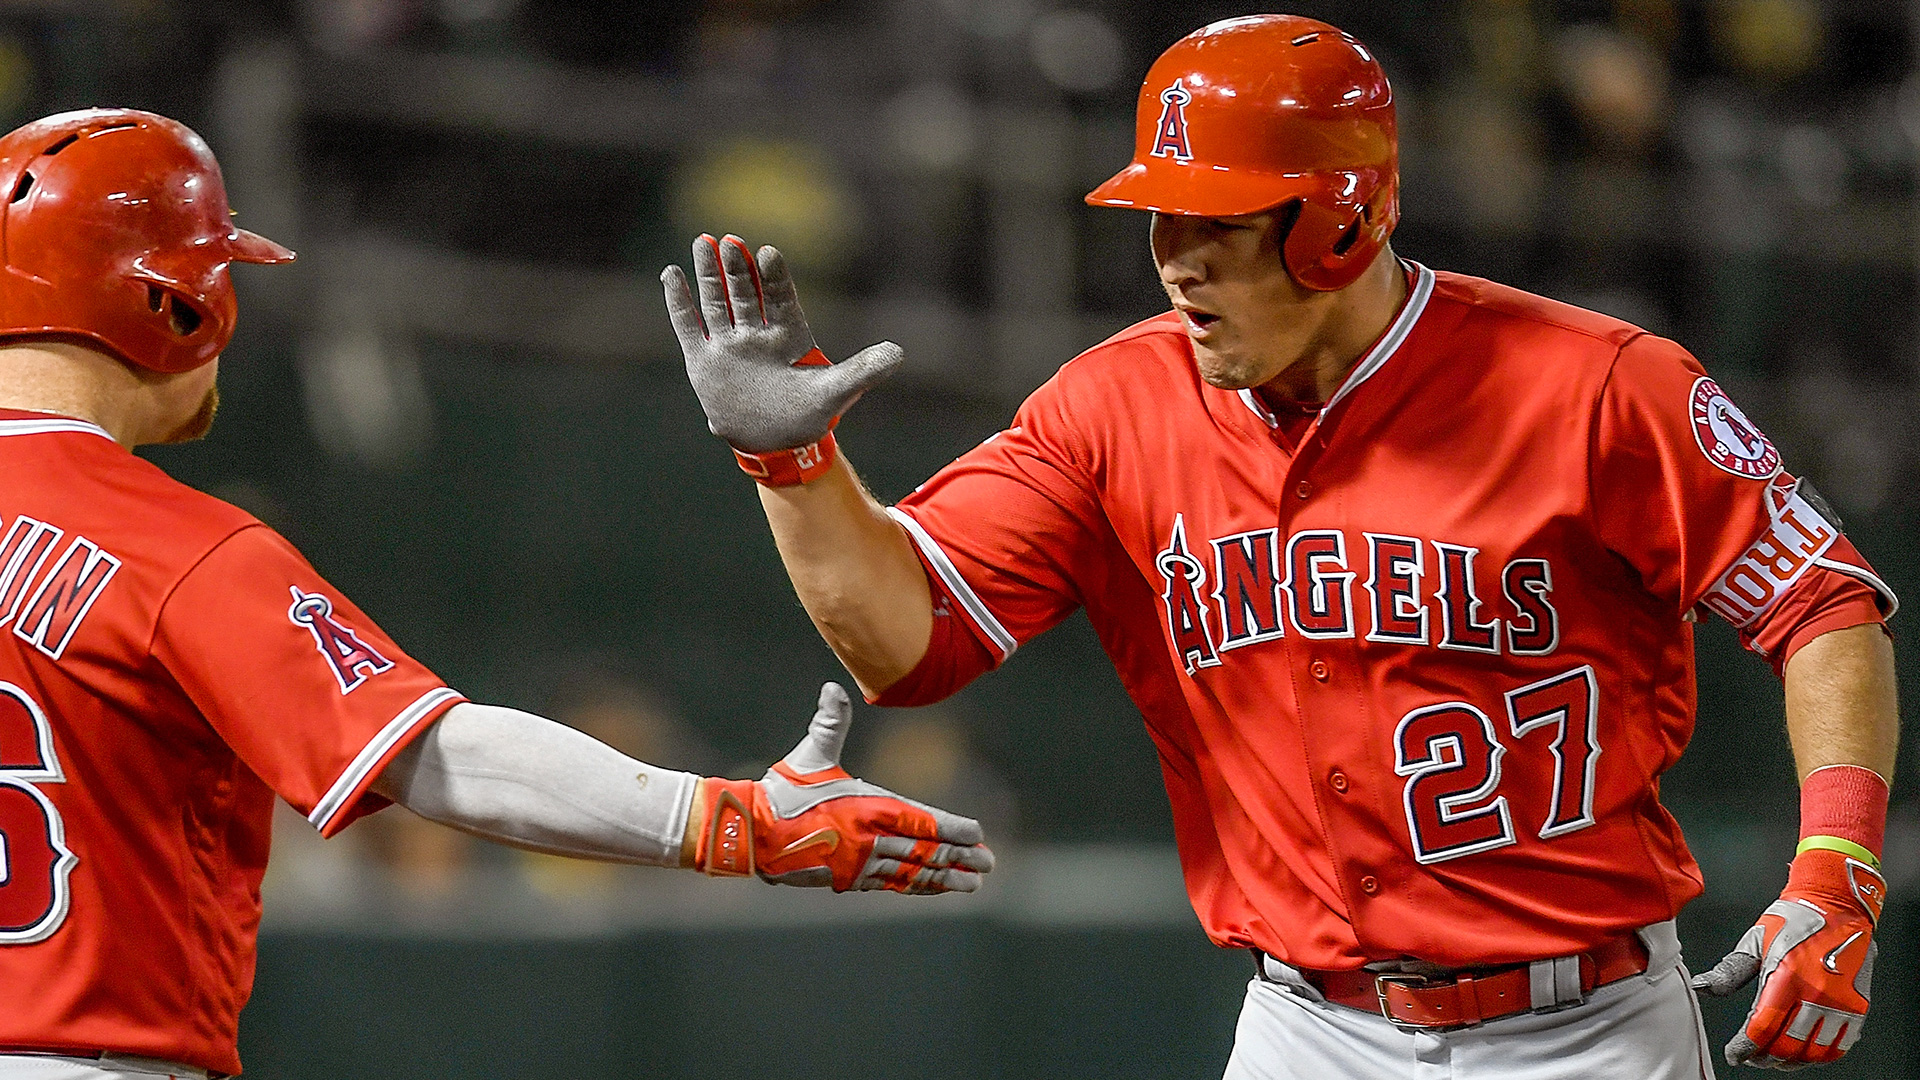 Mike-trout-041616-getty-ftrjpg_1vrbdjbm5jgh11mm74za1p1yp